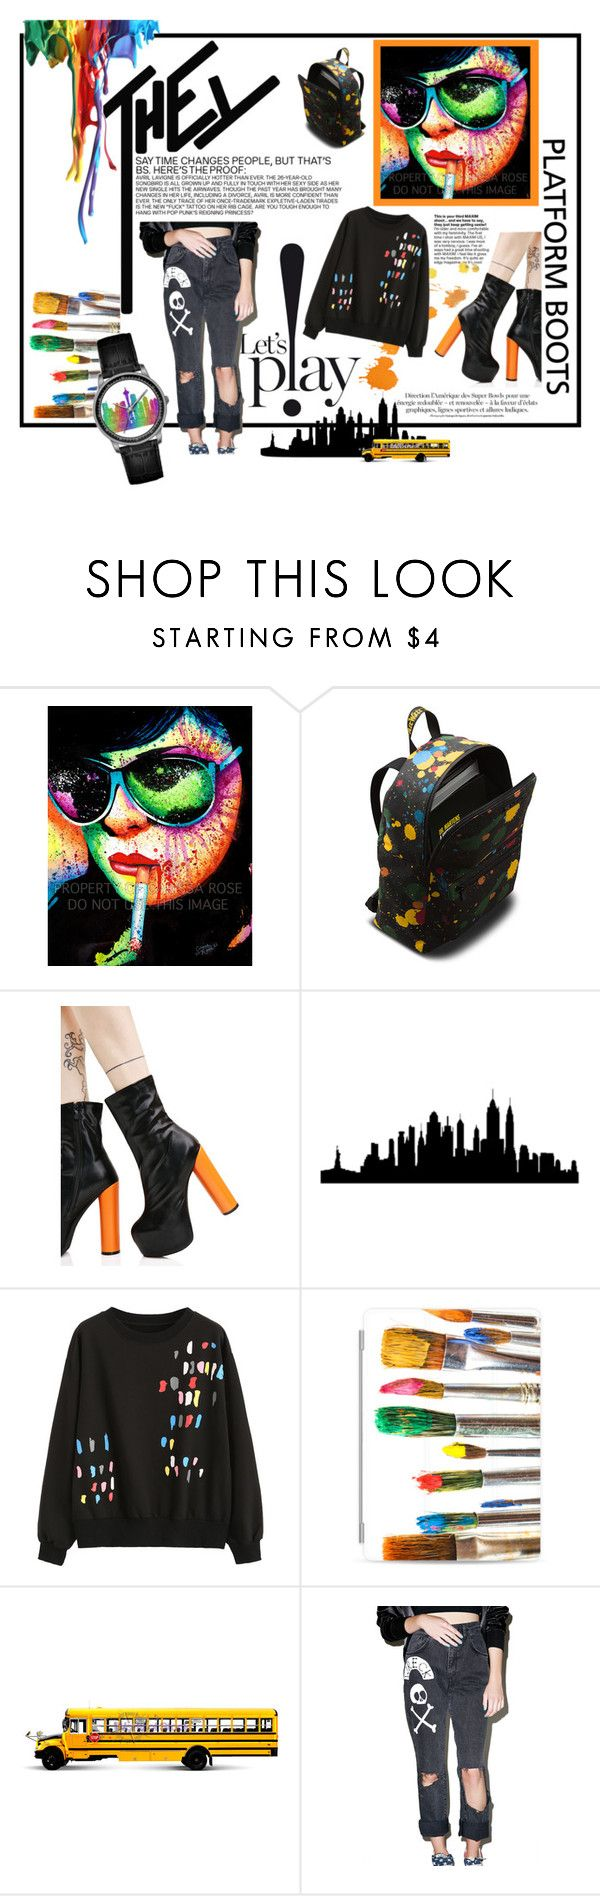 """""""Let's play your color"""" by atikazahra on Polyvore featuring Dr. Martens, Public Desire, WALL, Casetify, The Ragged Priest, colorful, PlatformBoots, polyvorecontest and readytoschool"""